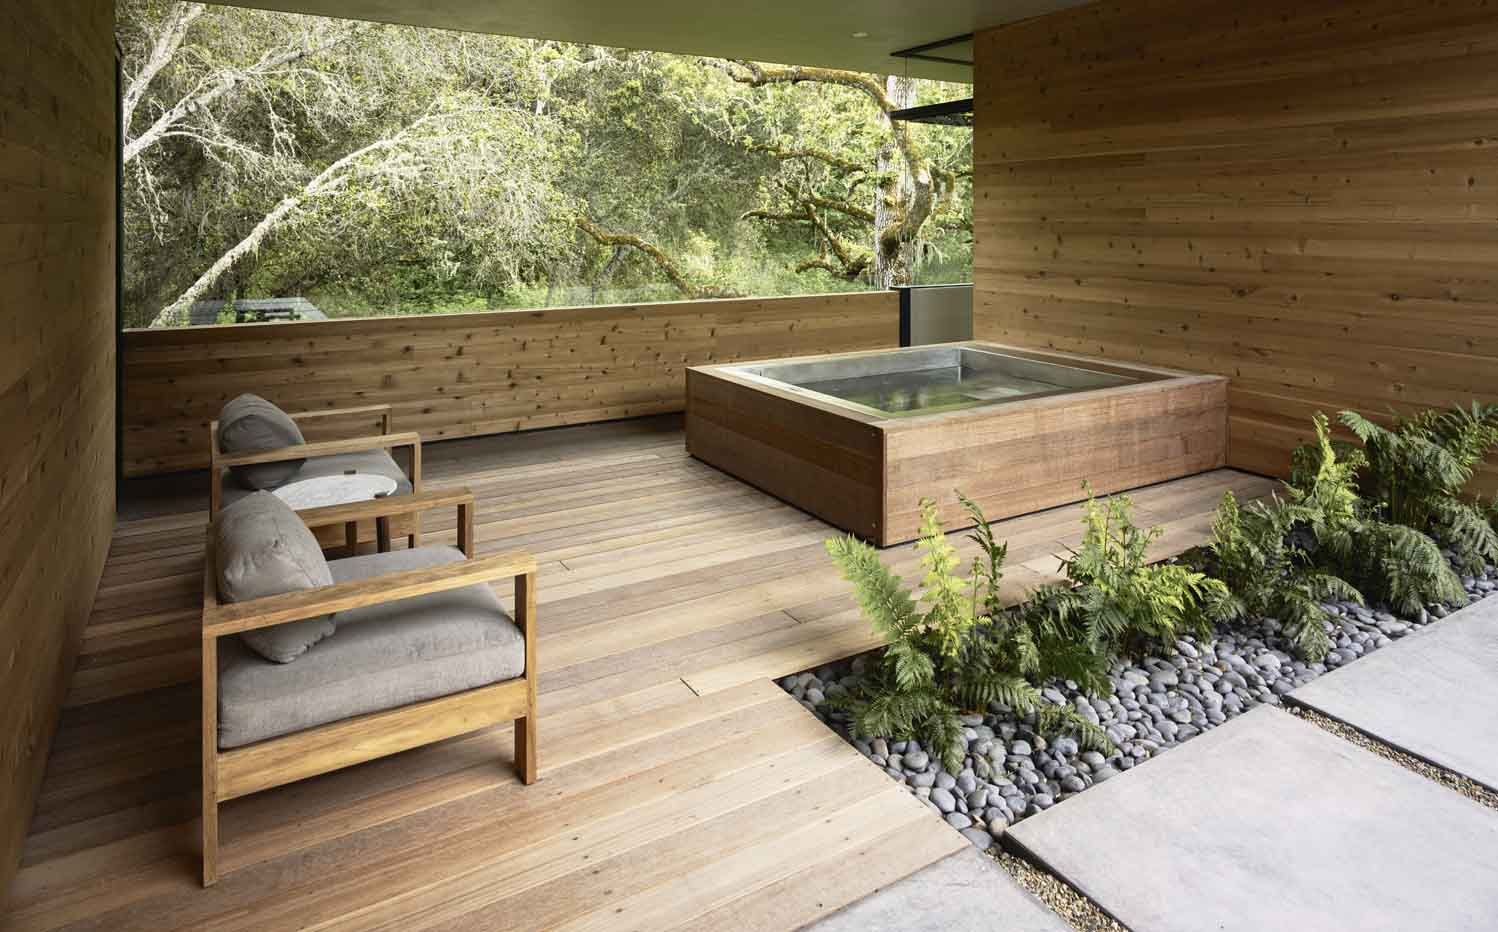 Stainless Steel Spa Hot Tub Luxury Hot Tubs Indoor Jacuzzi